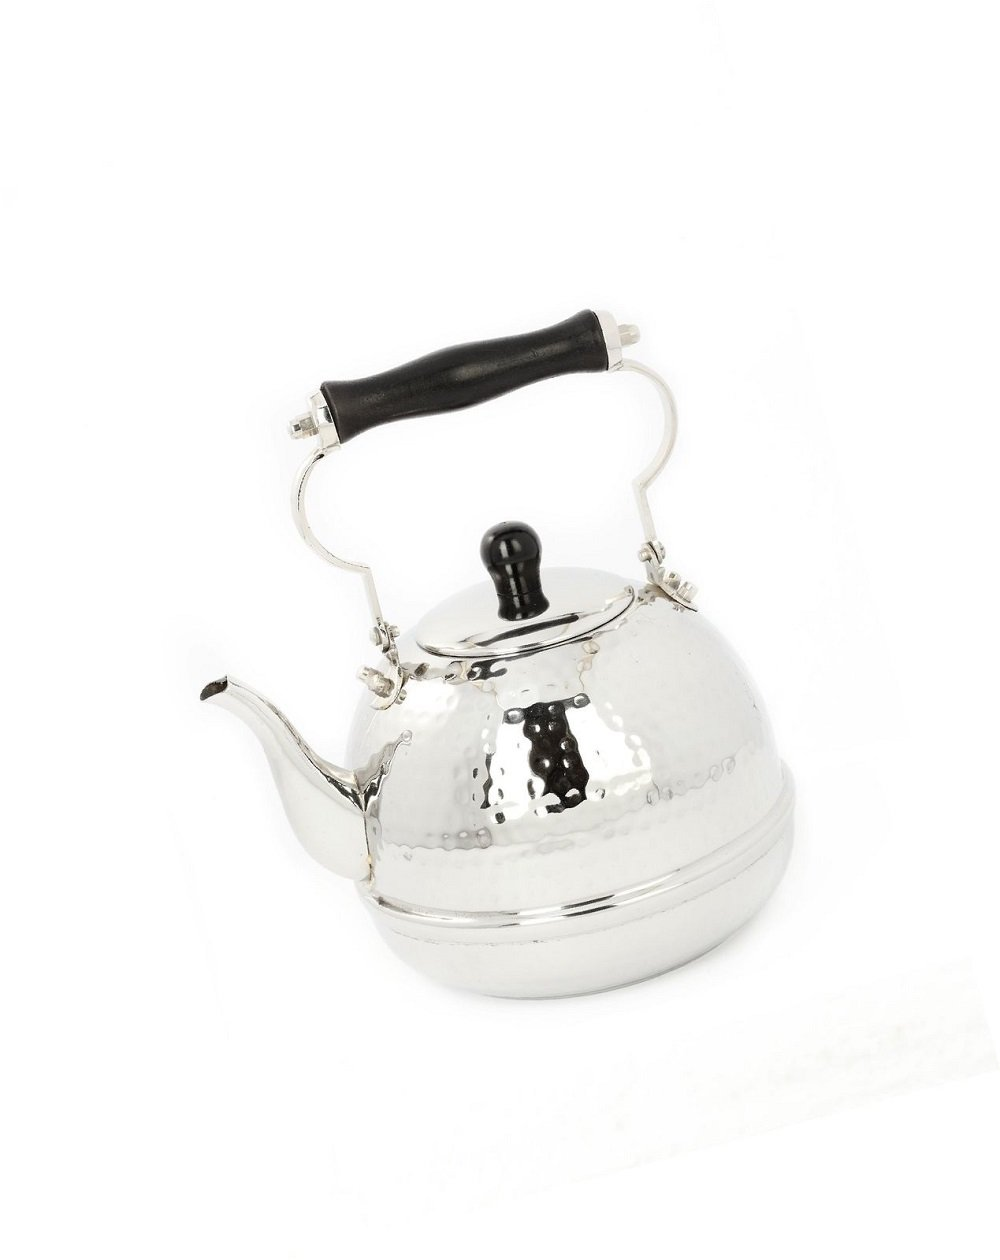 Green_Kitchen Old Dutch Hammered Stainless Steel Teakettle with Wood Handle, 2 Qt. by Green_Kitchen